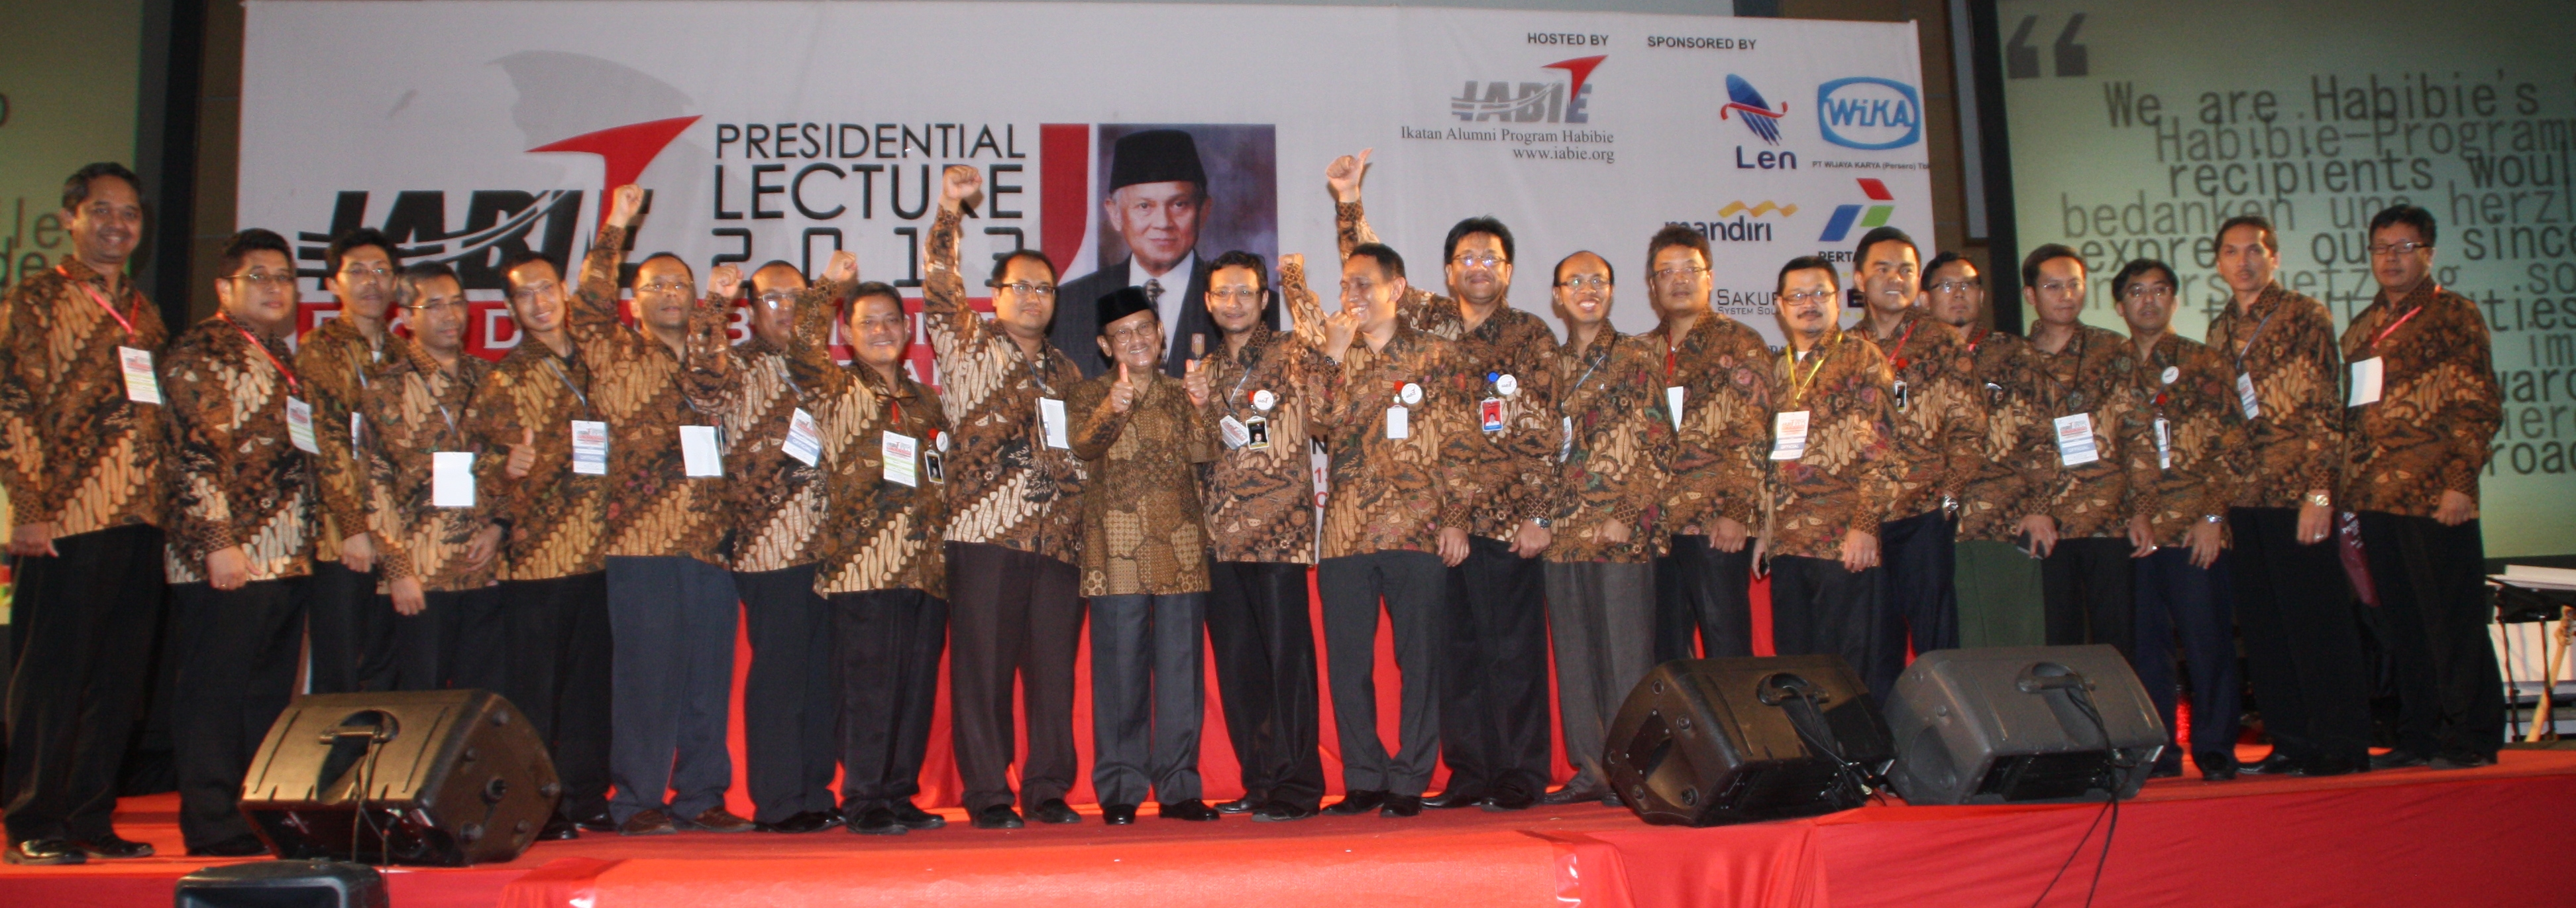 presidential-lecture-2013-381